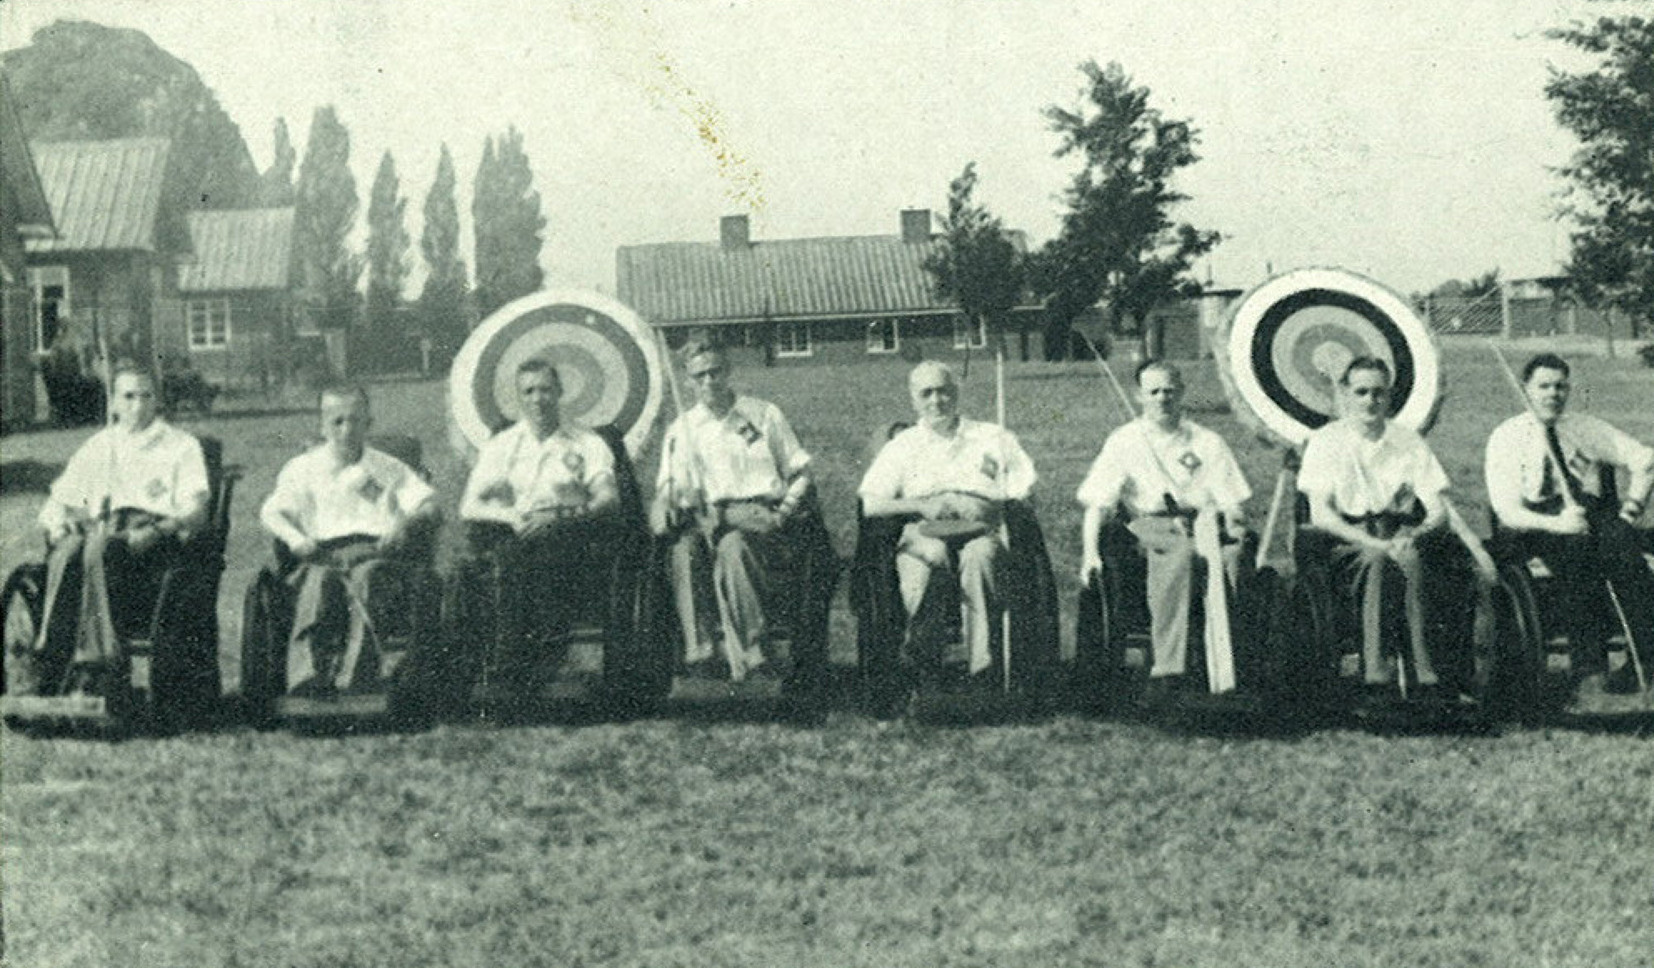 The first Stoke Mandeville Games - the forerunner for the Paralympics - took place at Stoke Mandeville in 1948 and featured 16 competitors recovering from spinal injuries ©WheelPower